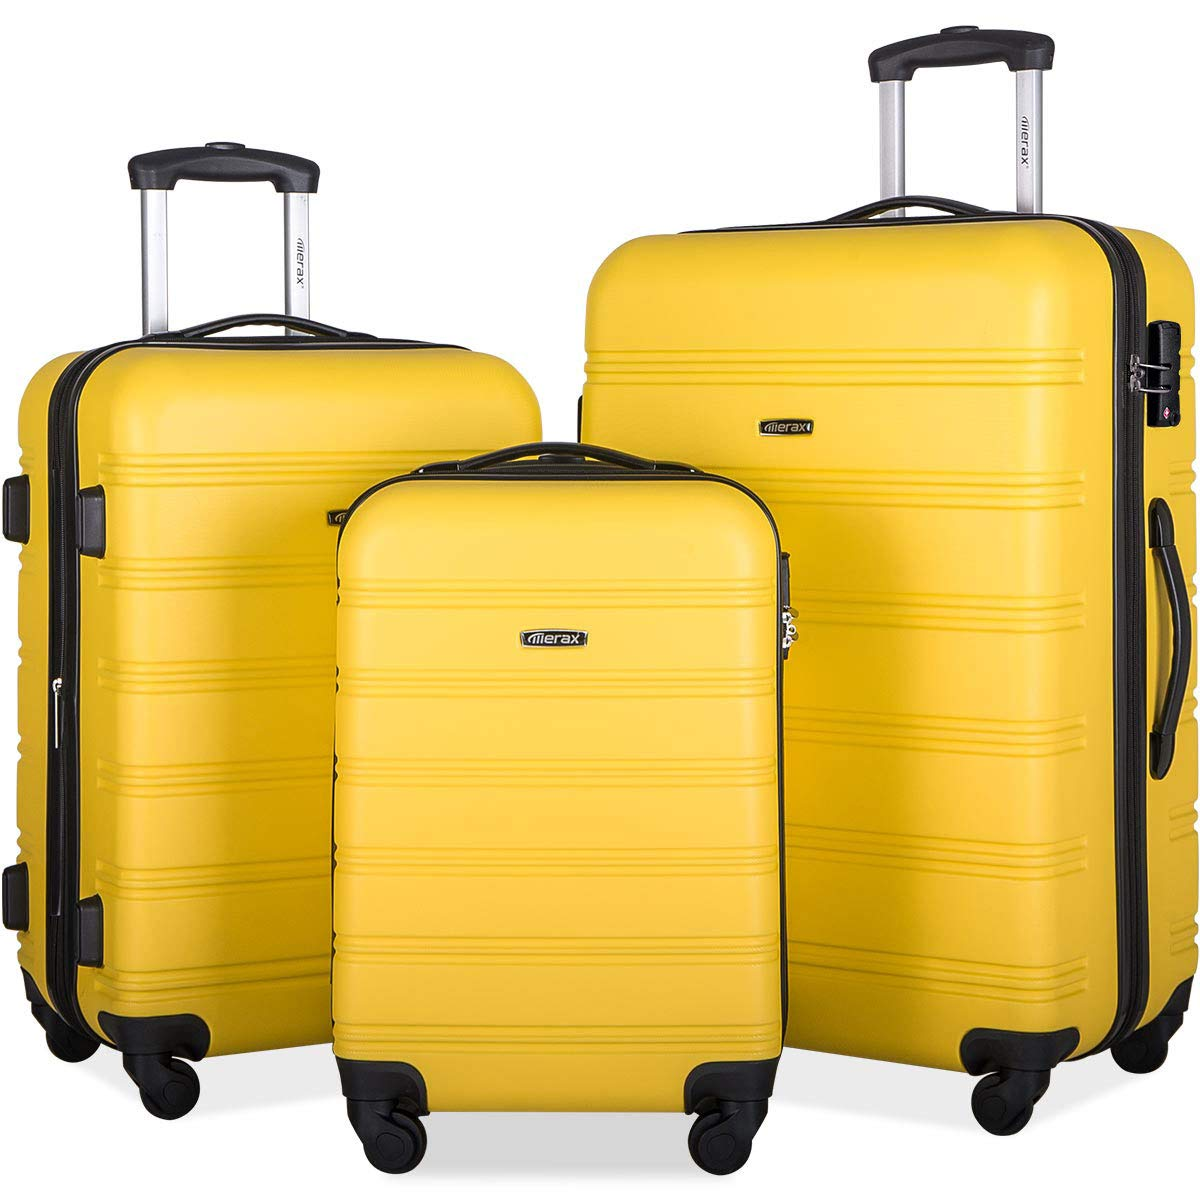 Merax Expandable Luggage Set with TSA Locks, 3 Piece Spinner Suitcase Set (yellow) by Merax